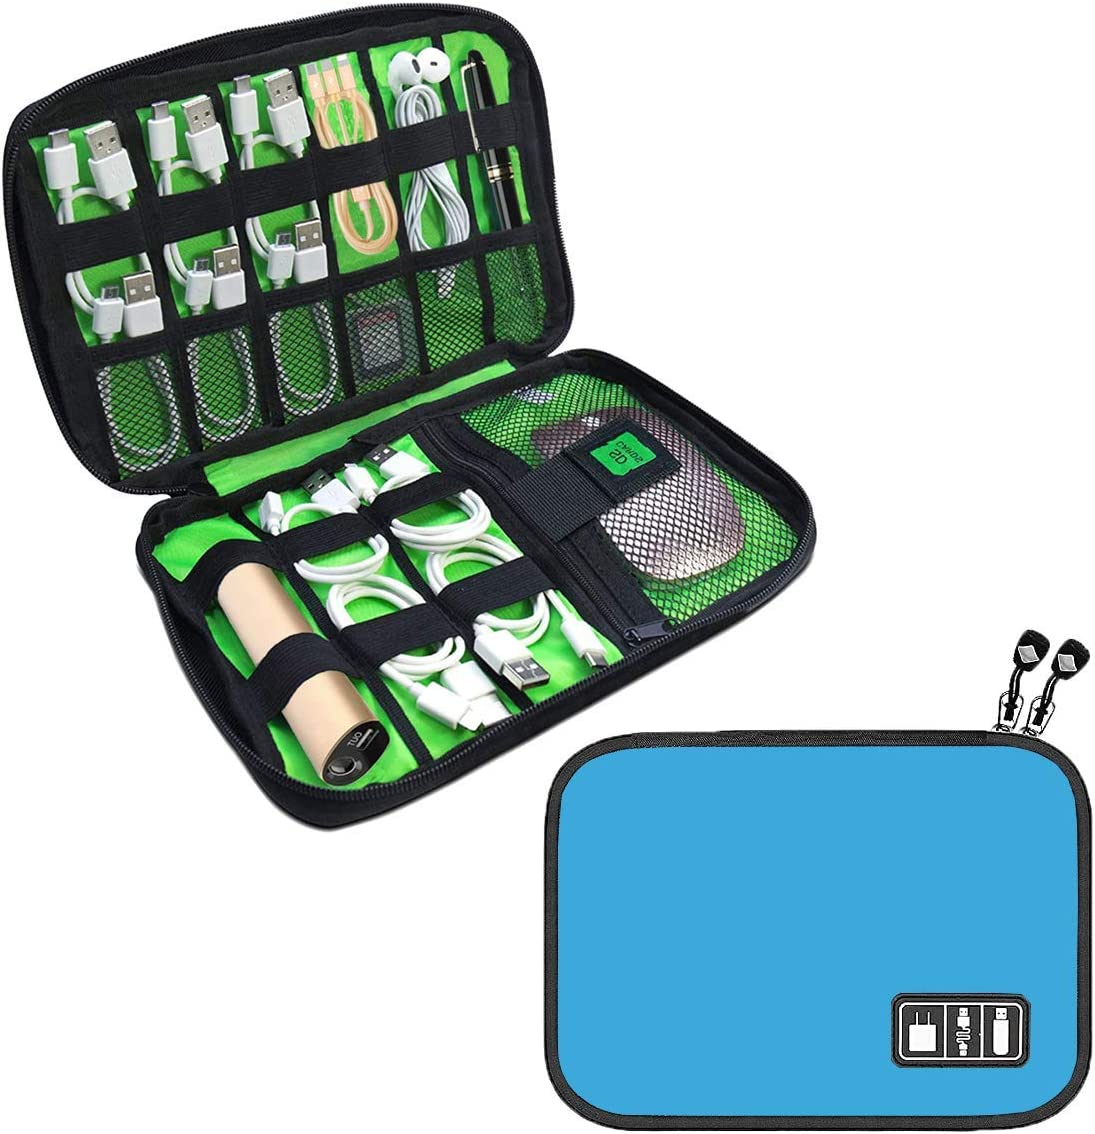 Cable Organizer Bag JBOS Accessories Organizer Travel Cable Storage Bag Gadget Organizer Bag Double Layer Electronics Organizer Case for Cables, USB Flash Drive, SD Cards (Blue)